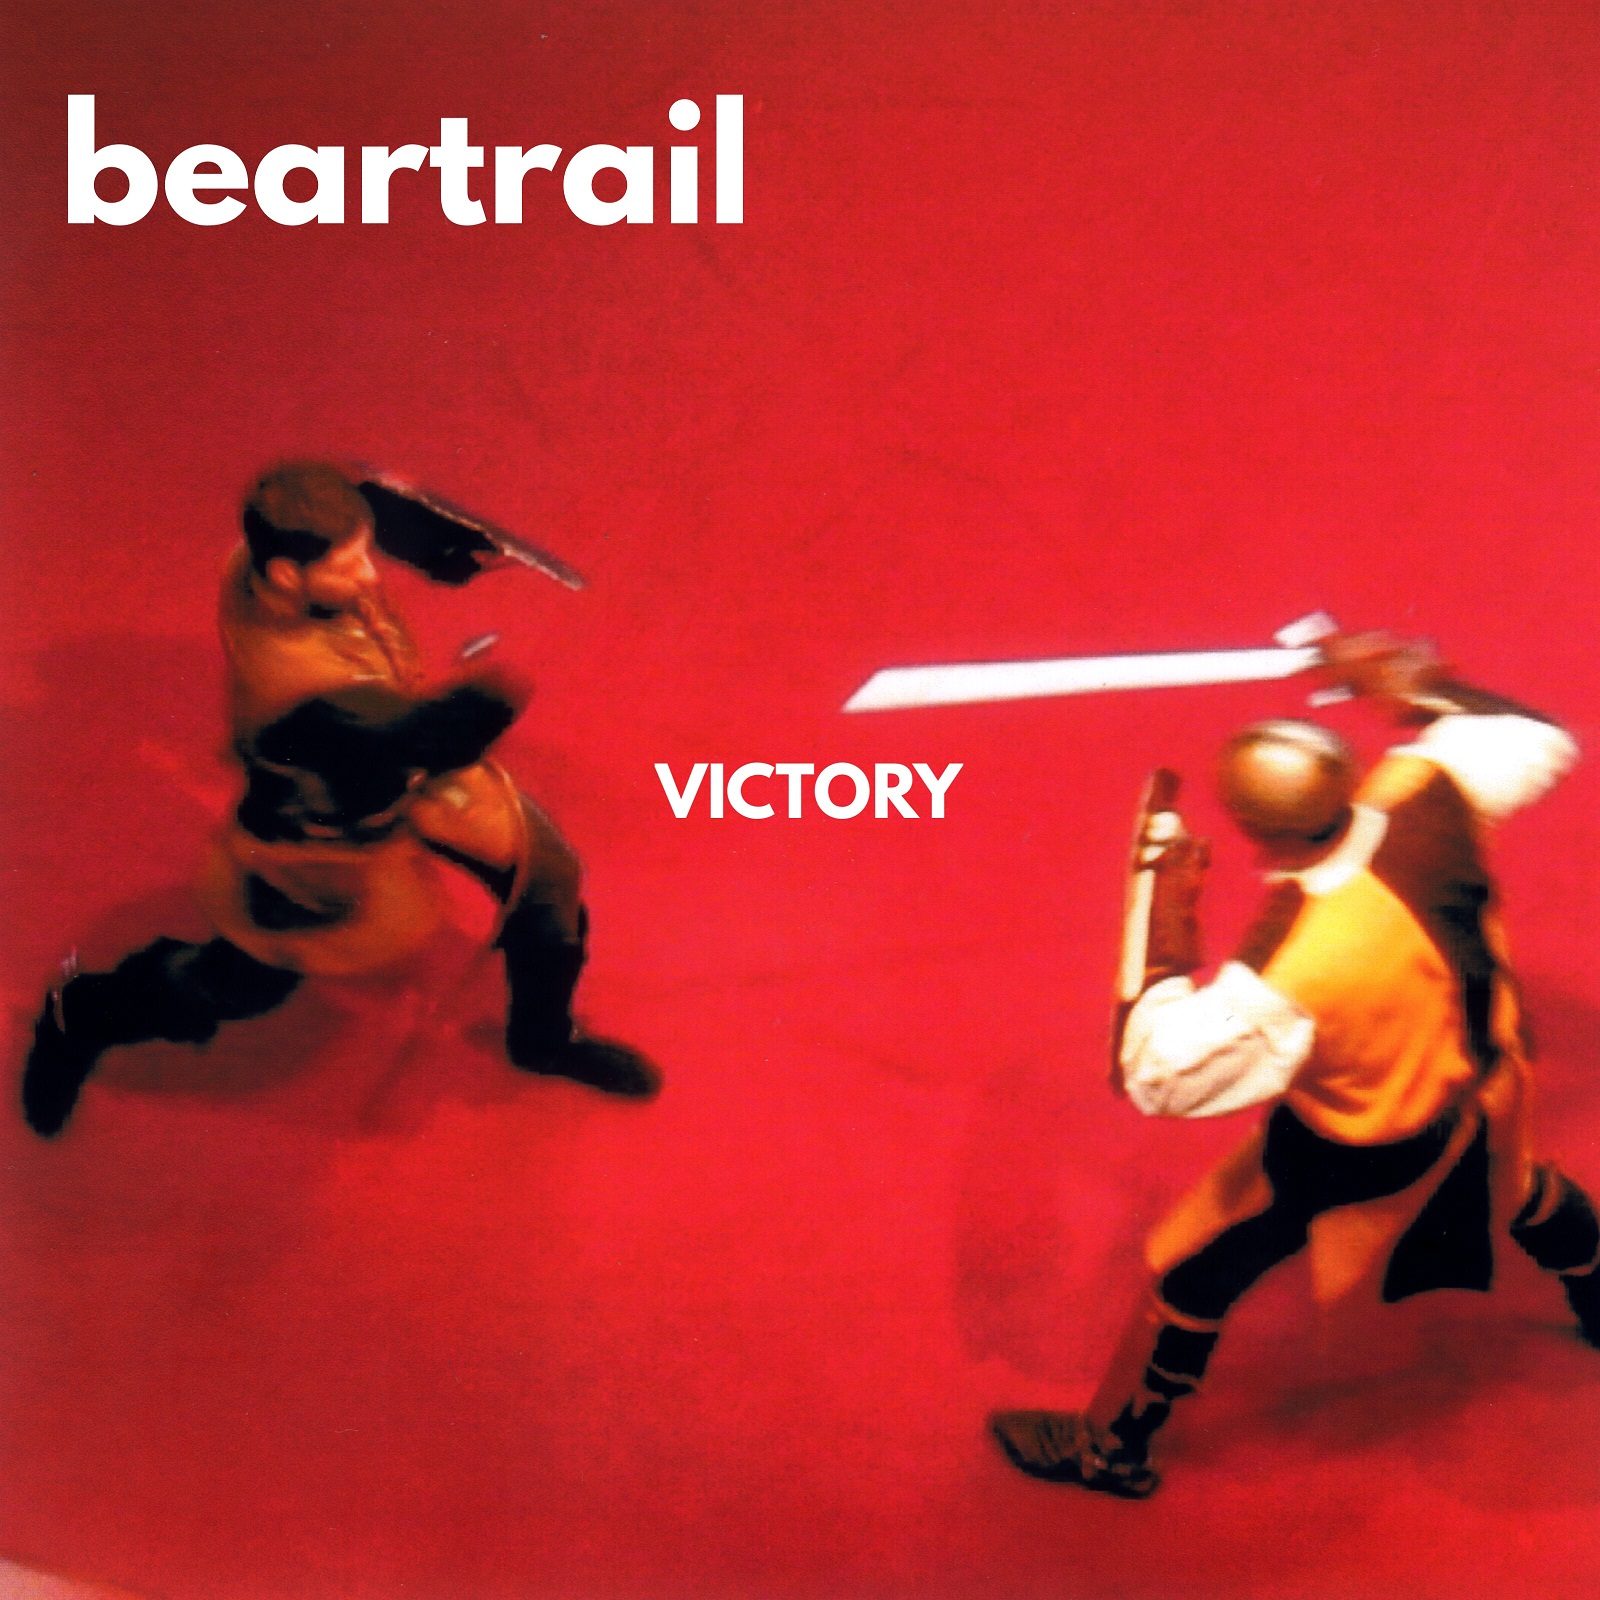 victory_beartrail